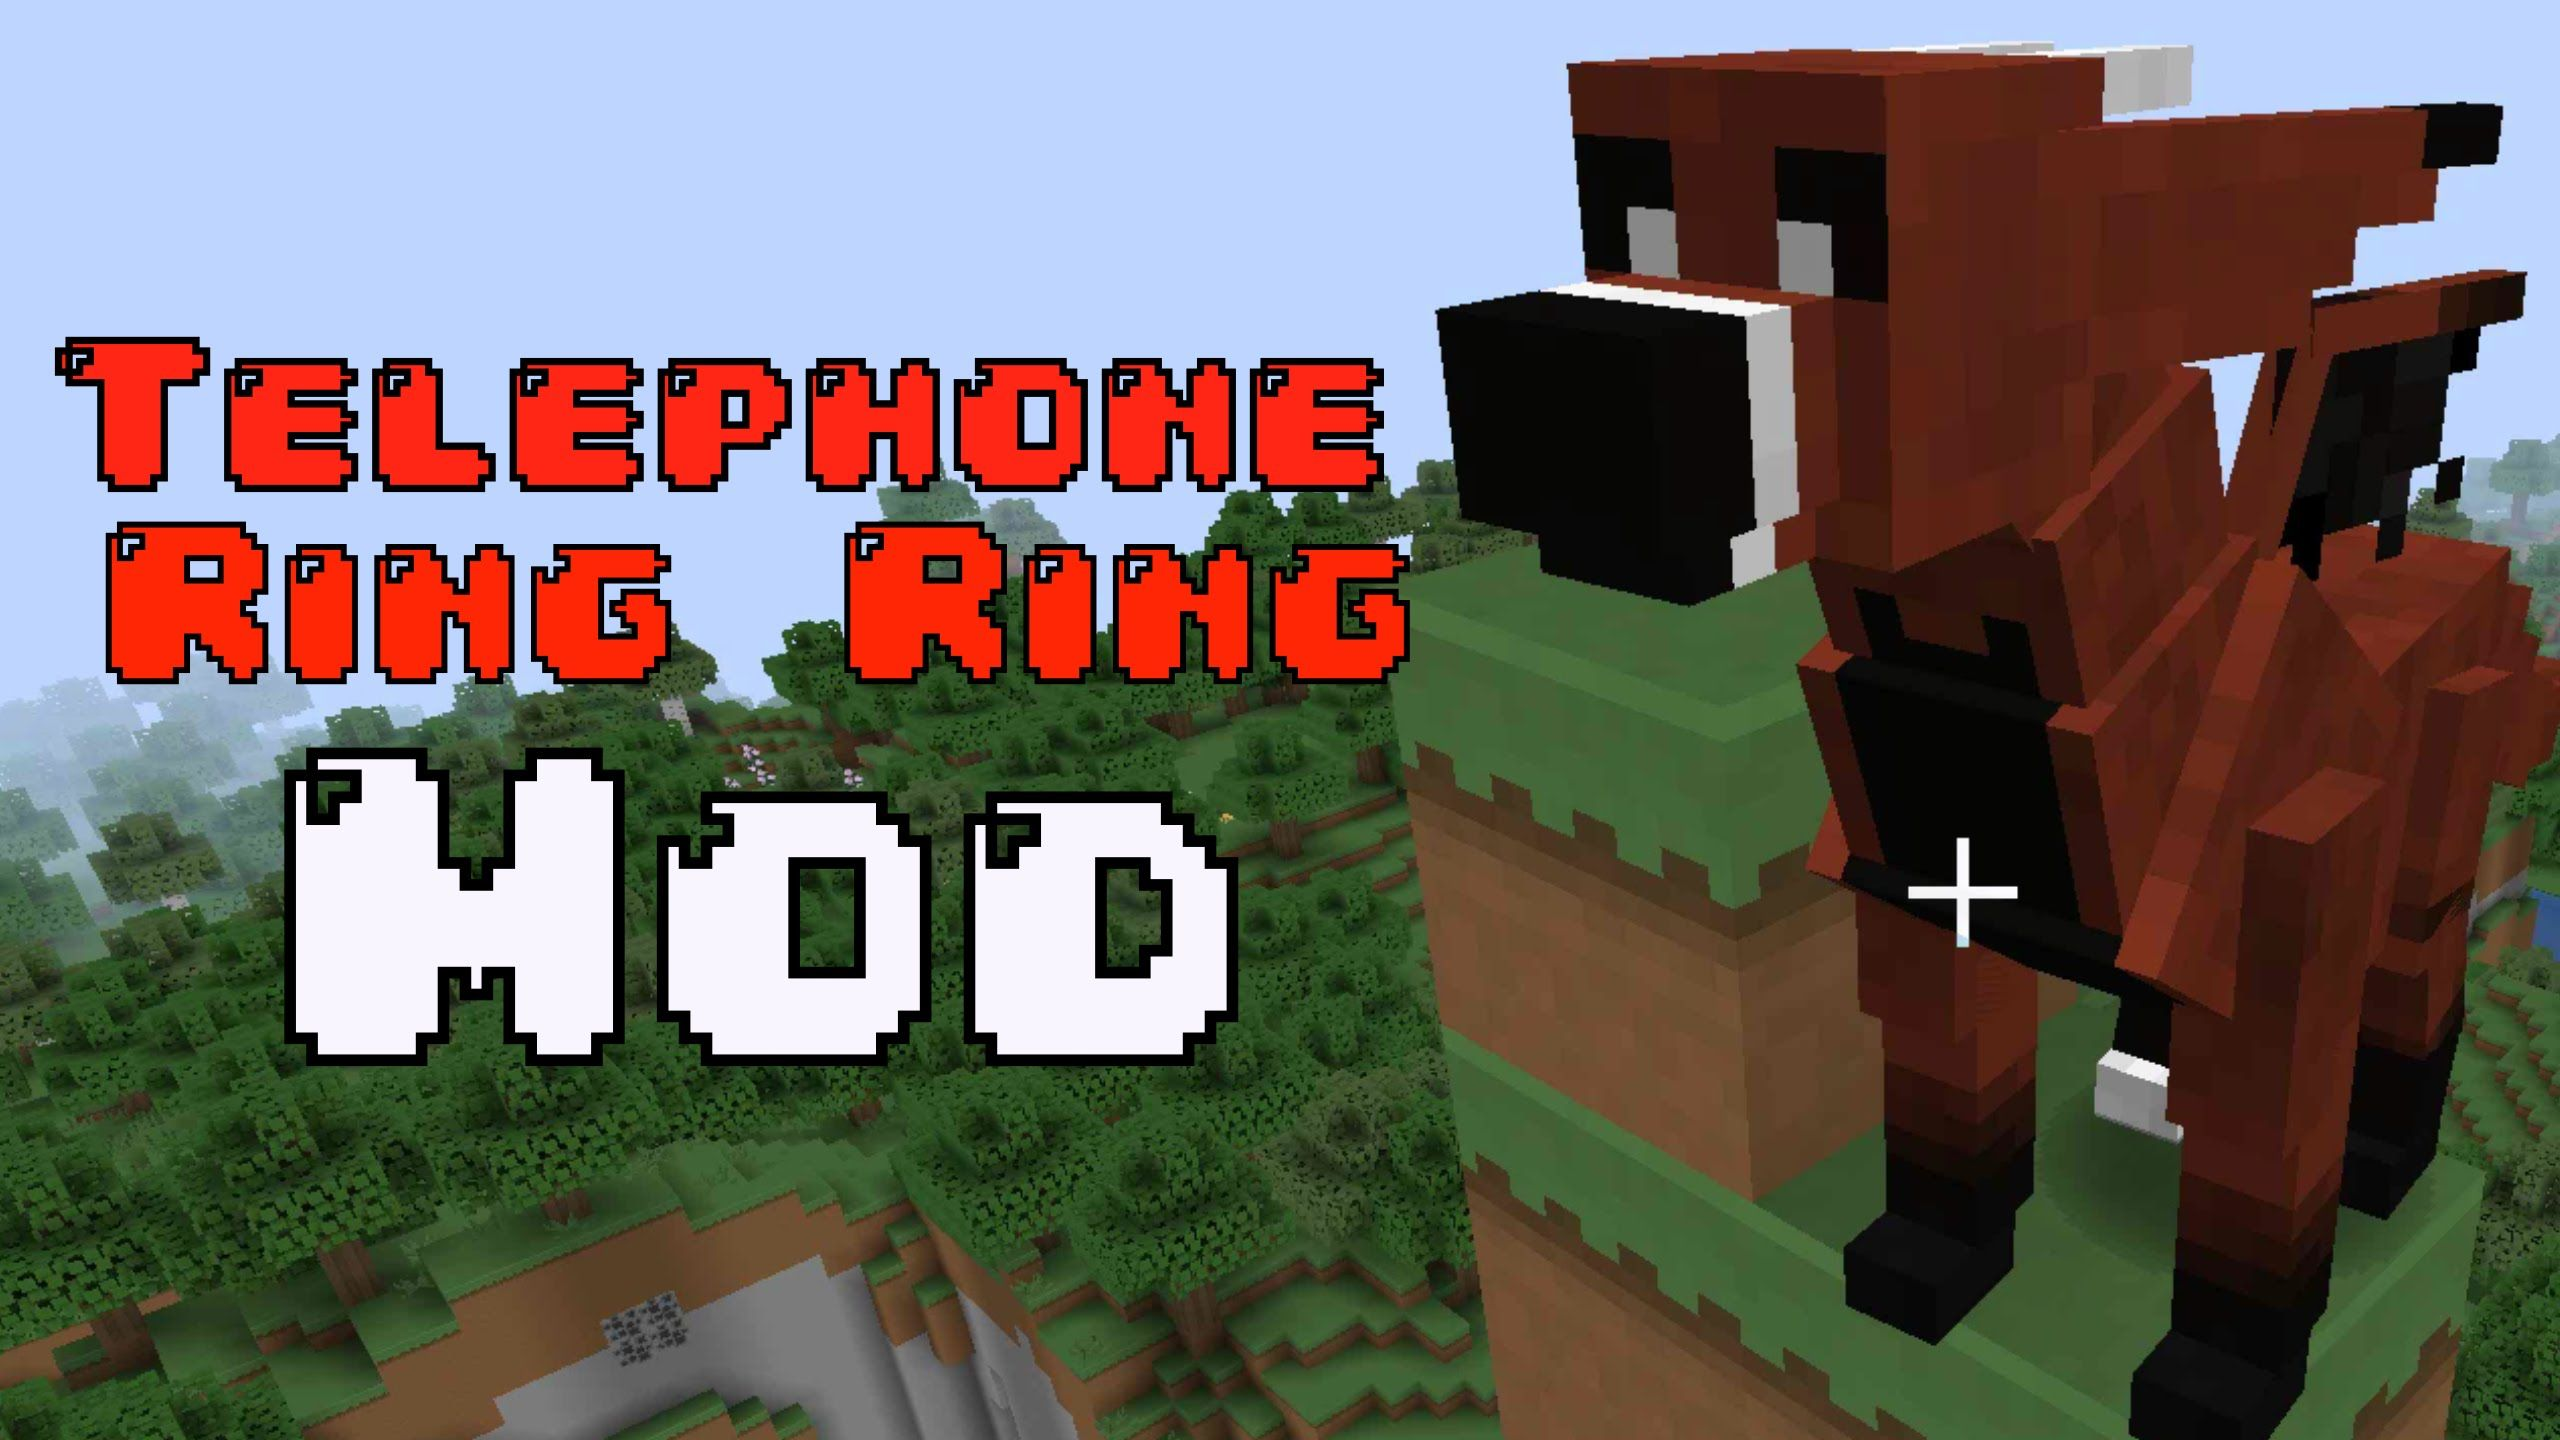 Telephone in Minecraft? (Ft.Telephone Ring Ring) How to